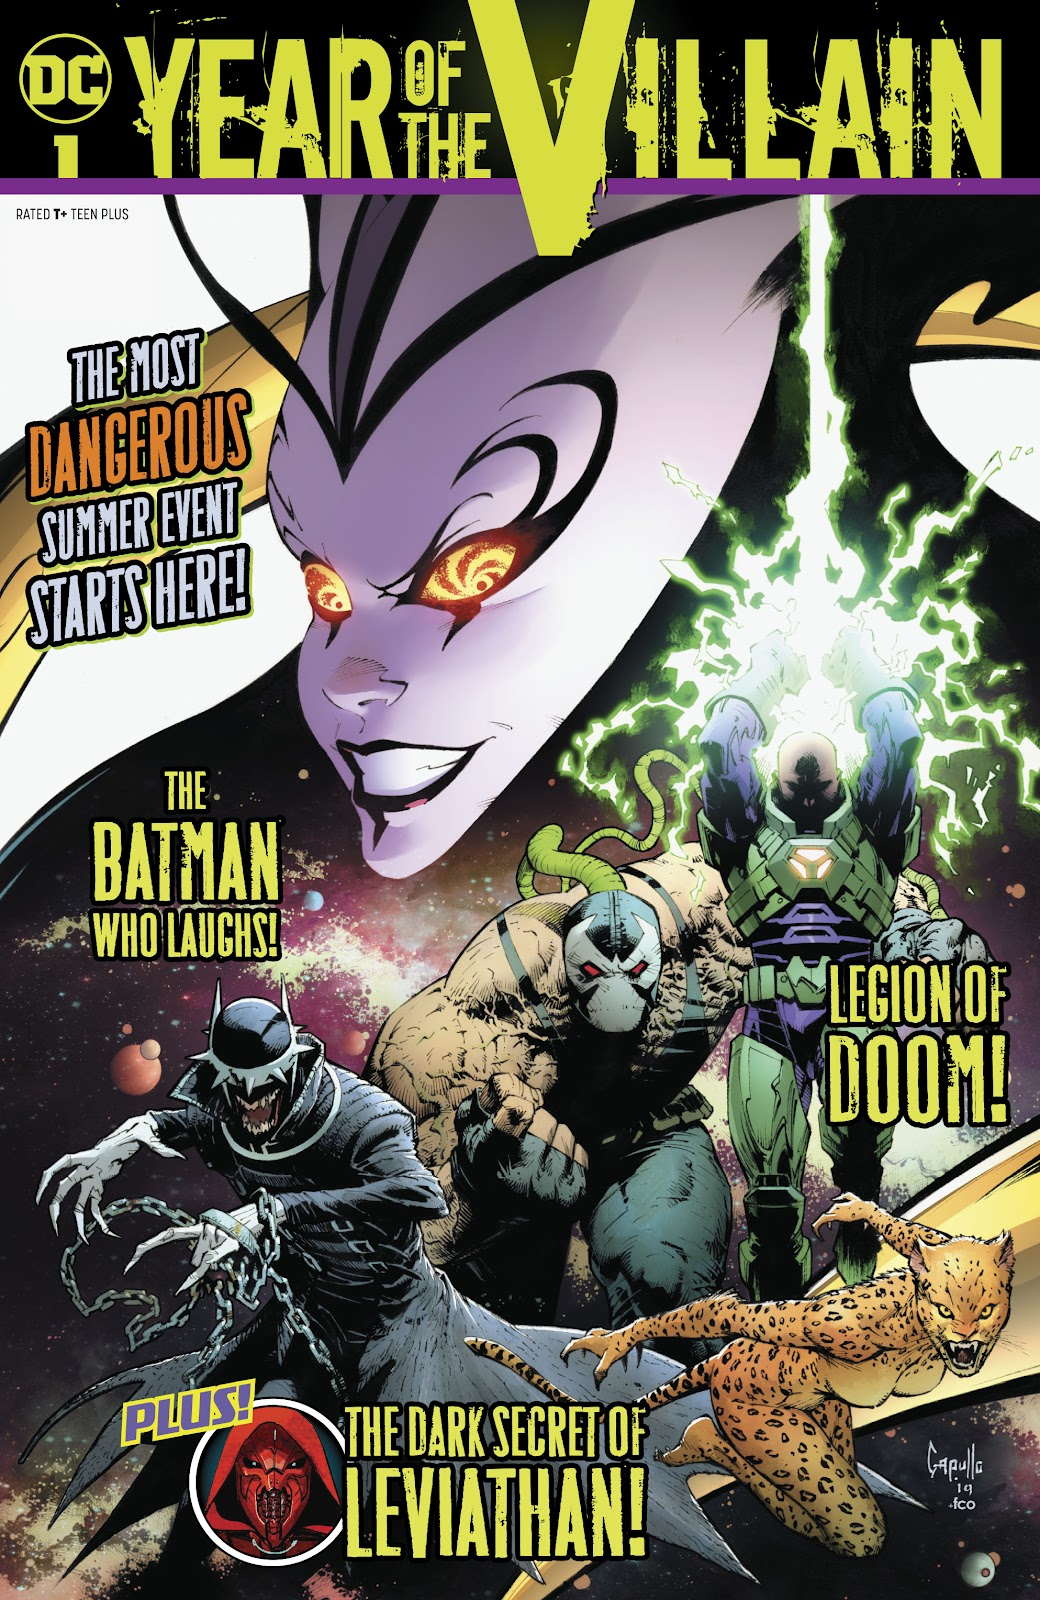 Read online DC's Year of the Villain Special comic -  Issue # Full - 1